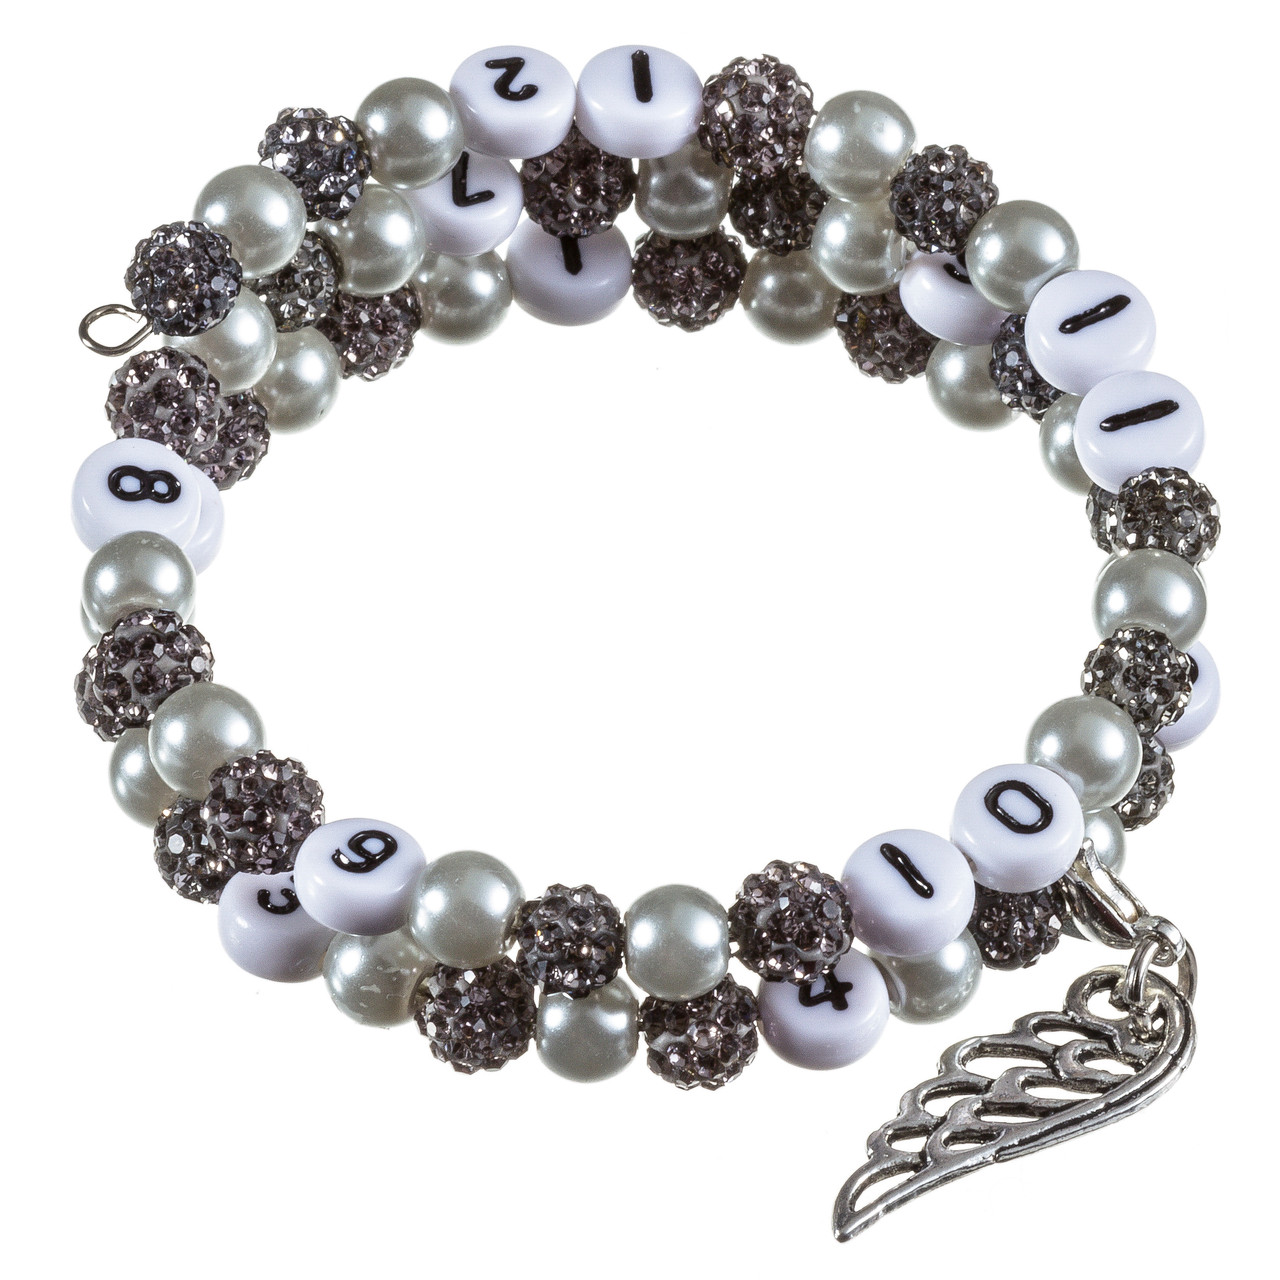 Stillarmband Grey Strass-/Glaswachsperlen